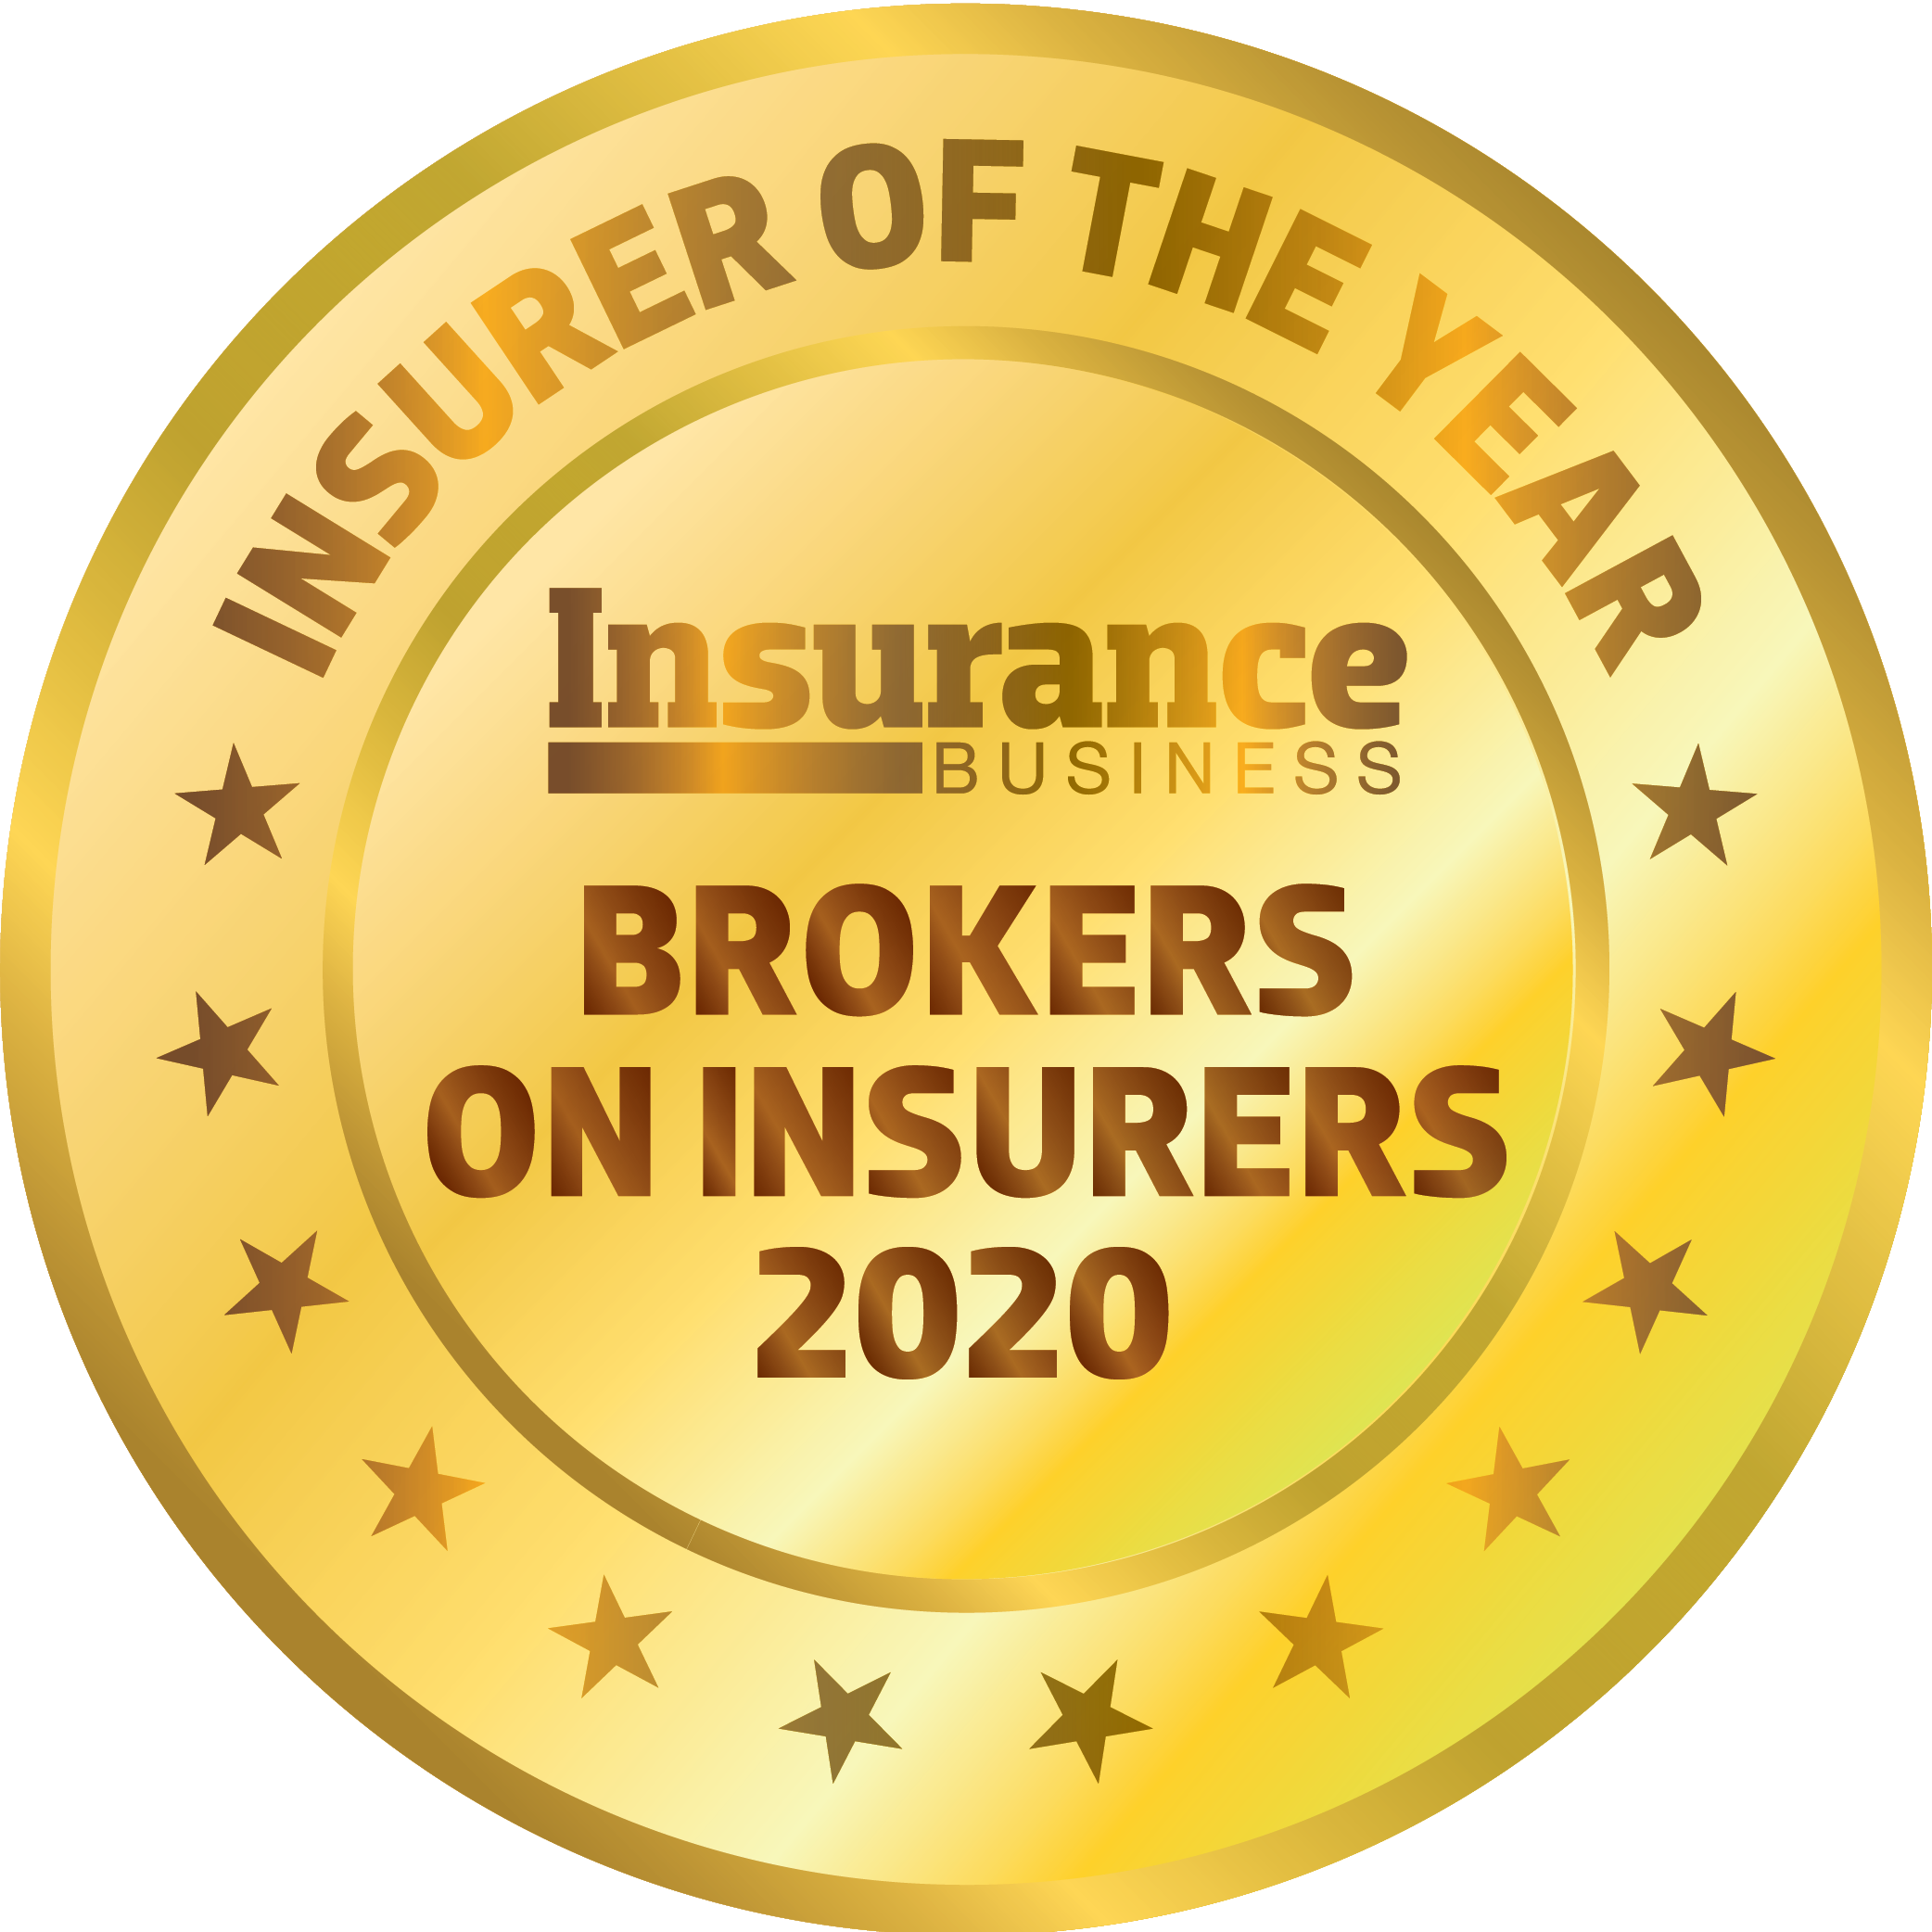 Insurer of the year